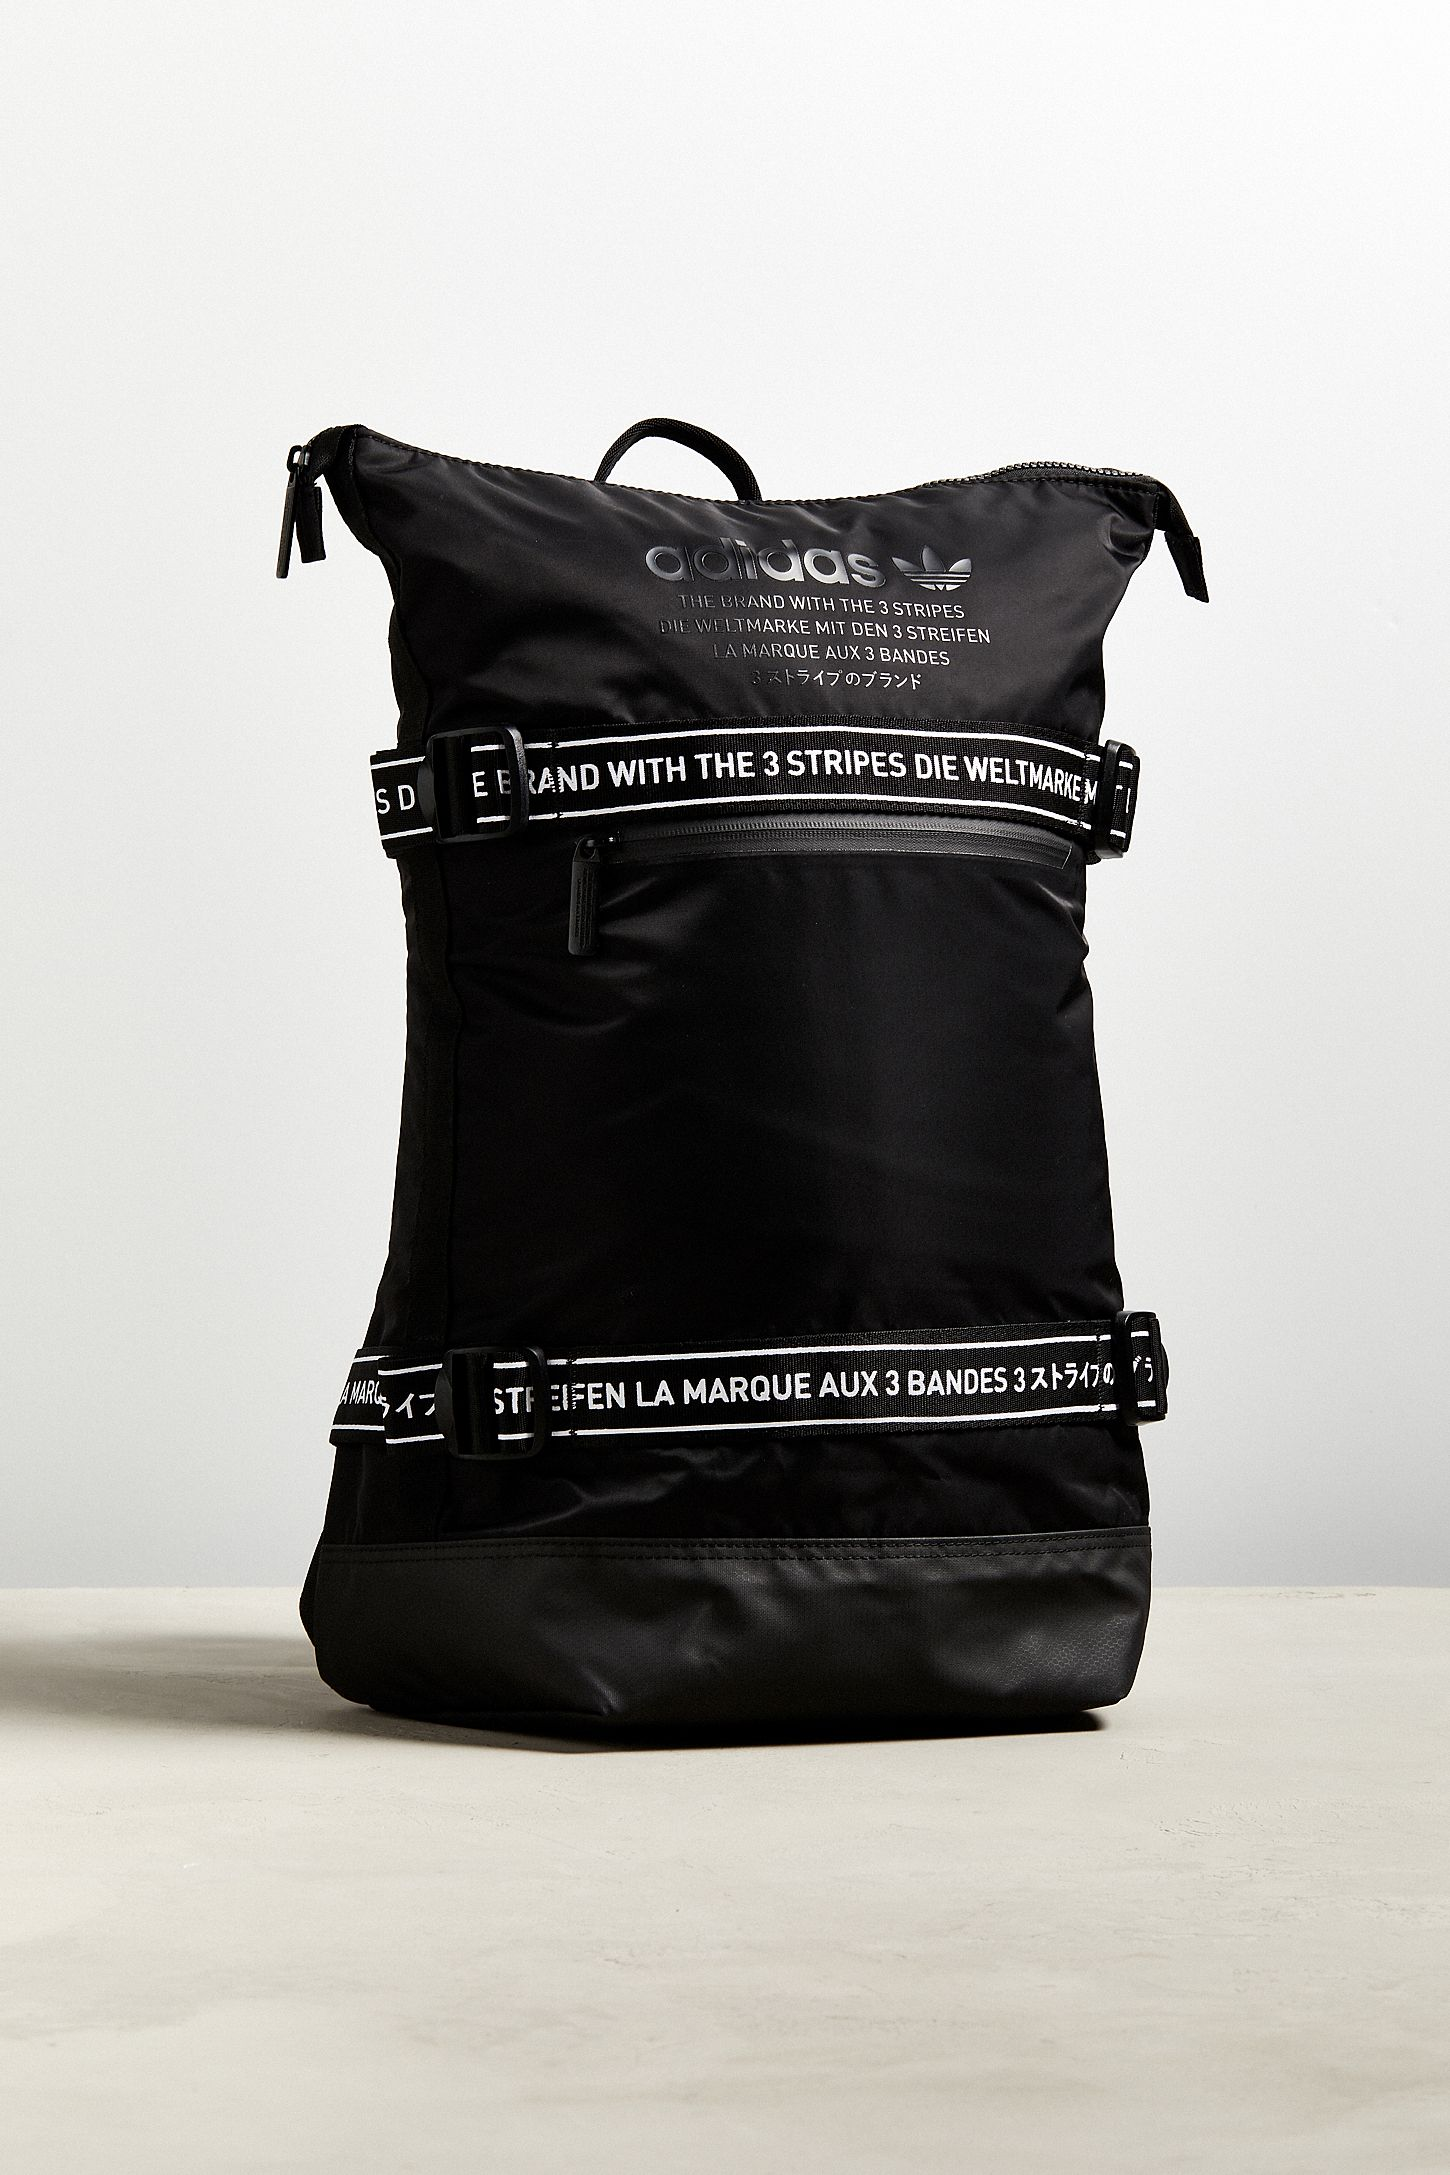 b82caaae79 adidas NMD Backpack   Urban Outfitters